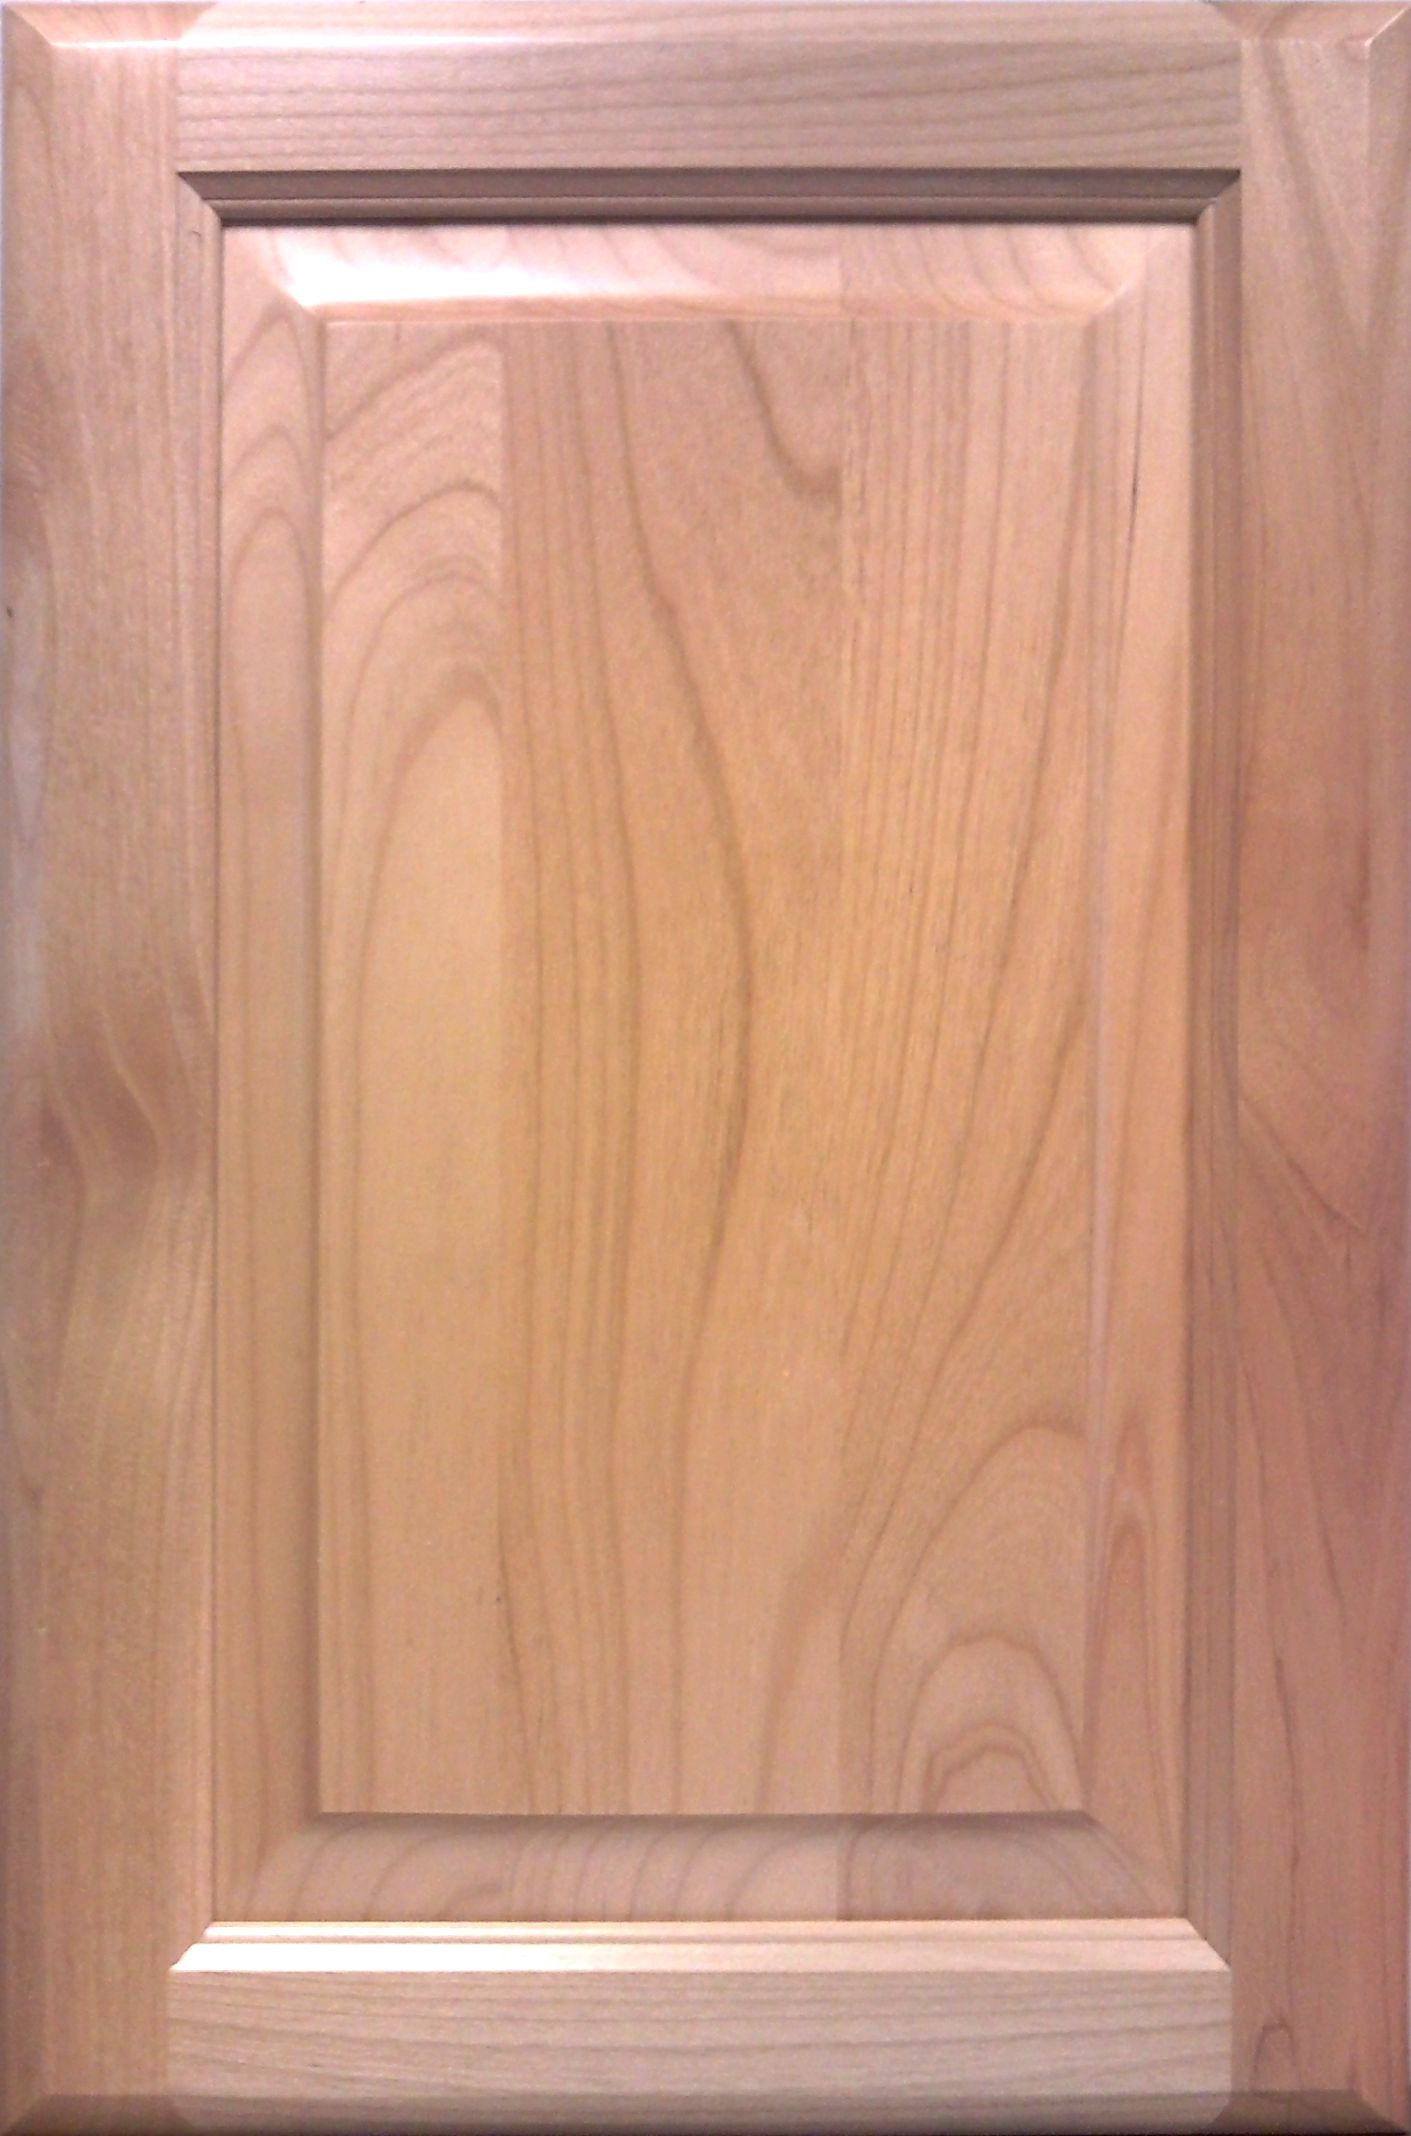 Pine Country Cabinet Doors Cope Stick Cabinet doors 408 1